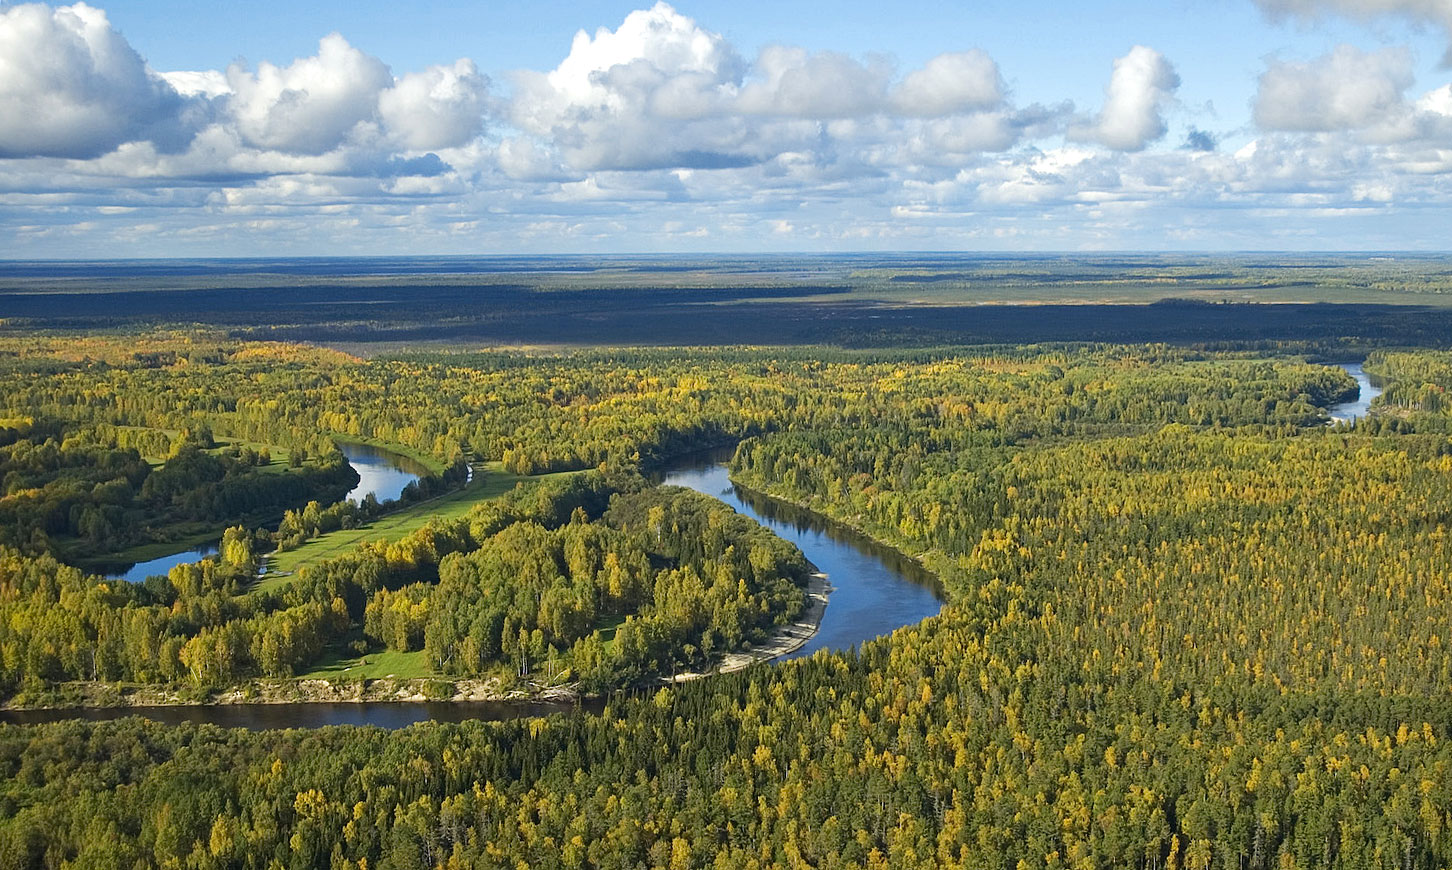 Western Siberia, home to the Bazhenov and Achimov Formations, boasts a wealth of opportunities for hydraulic fracturing. Photo: Vadim tLS Andrianov // Wikimedia Commons.